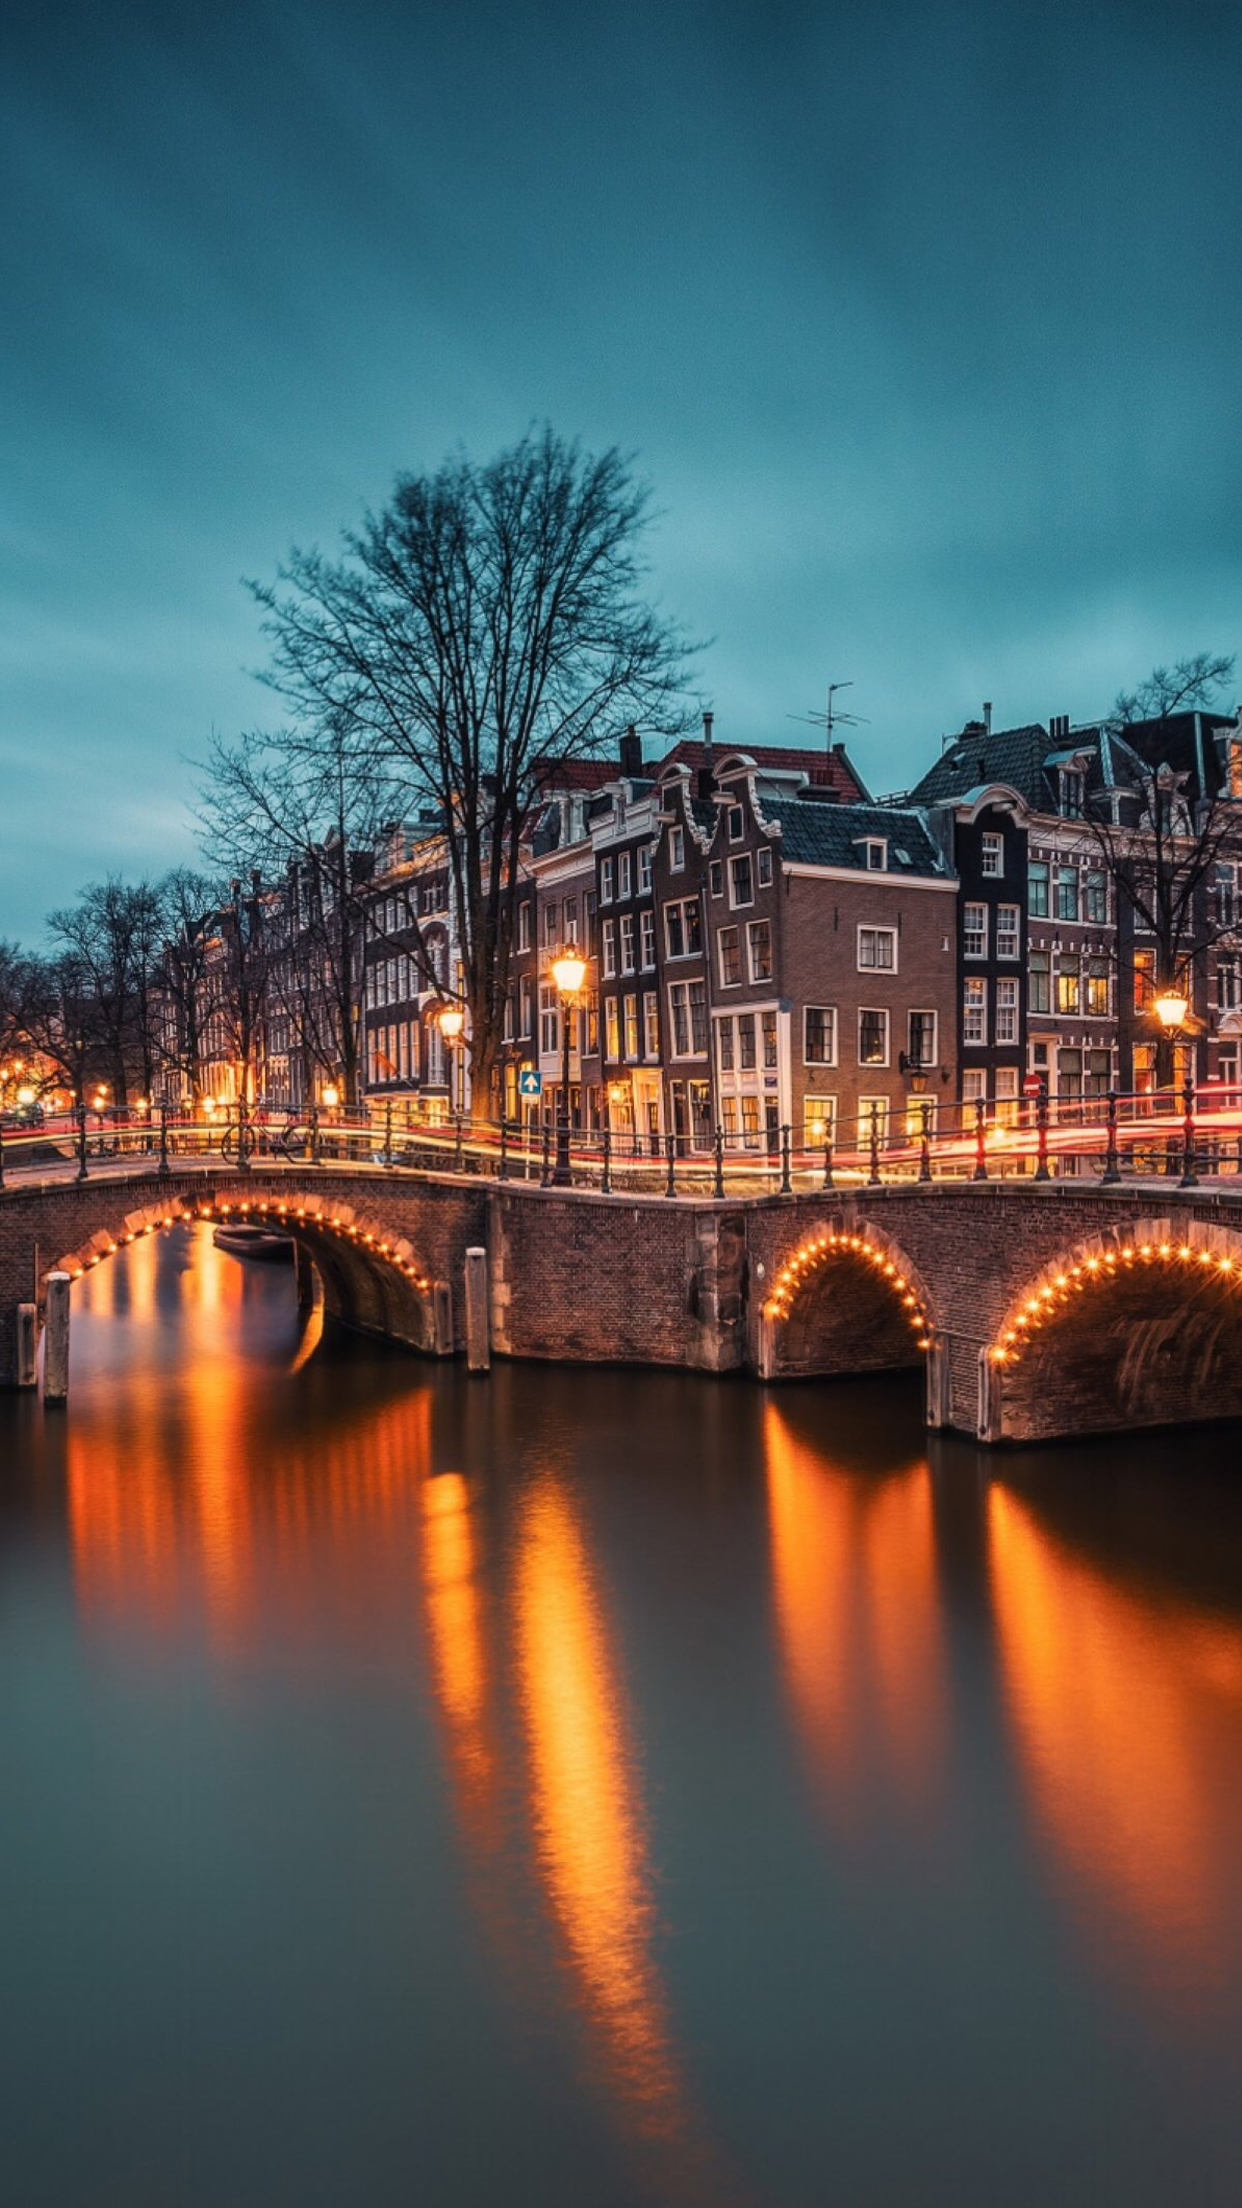 Amsterdam 2 Wallpaper For Iphone X 8 7 6 Free Download On 3wallpapers